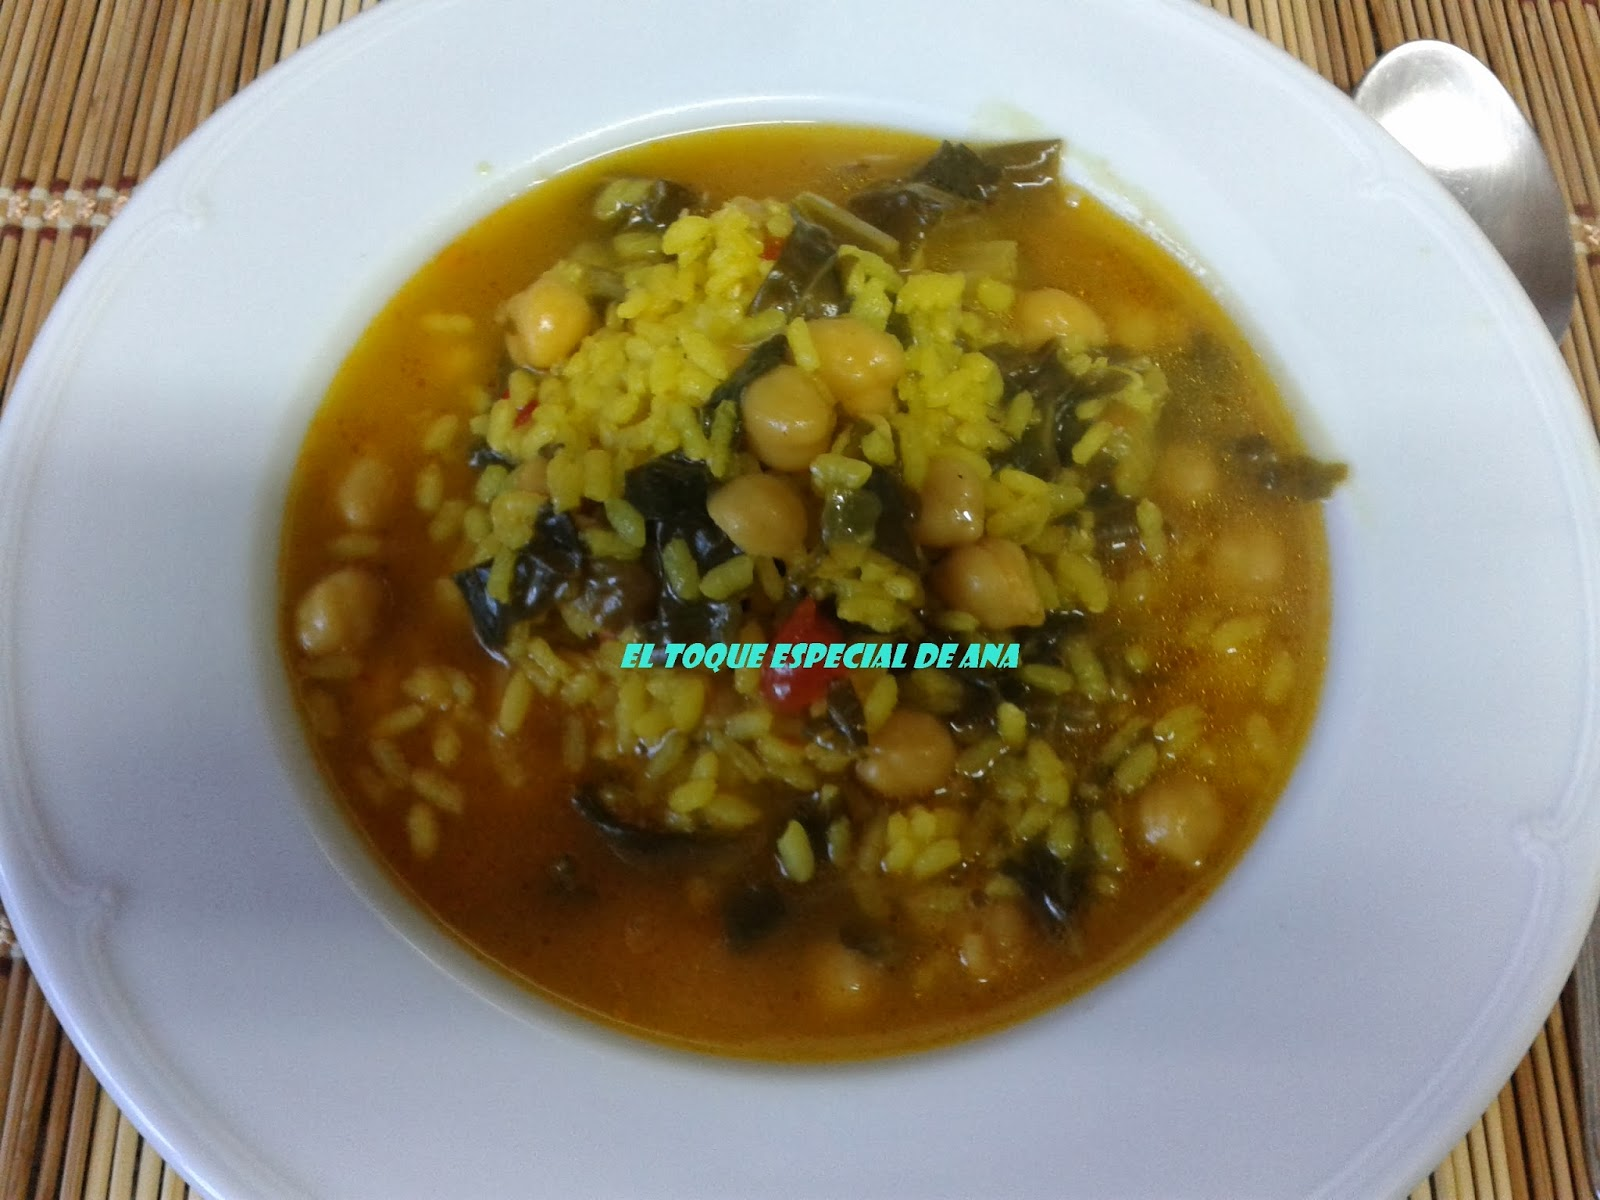 El toque especial de ana potaje de garbanzos con arroz - Potaje garbanzos con arroz ...